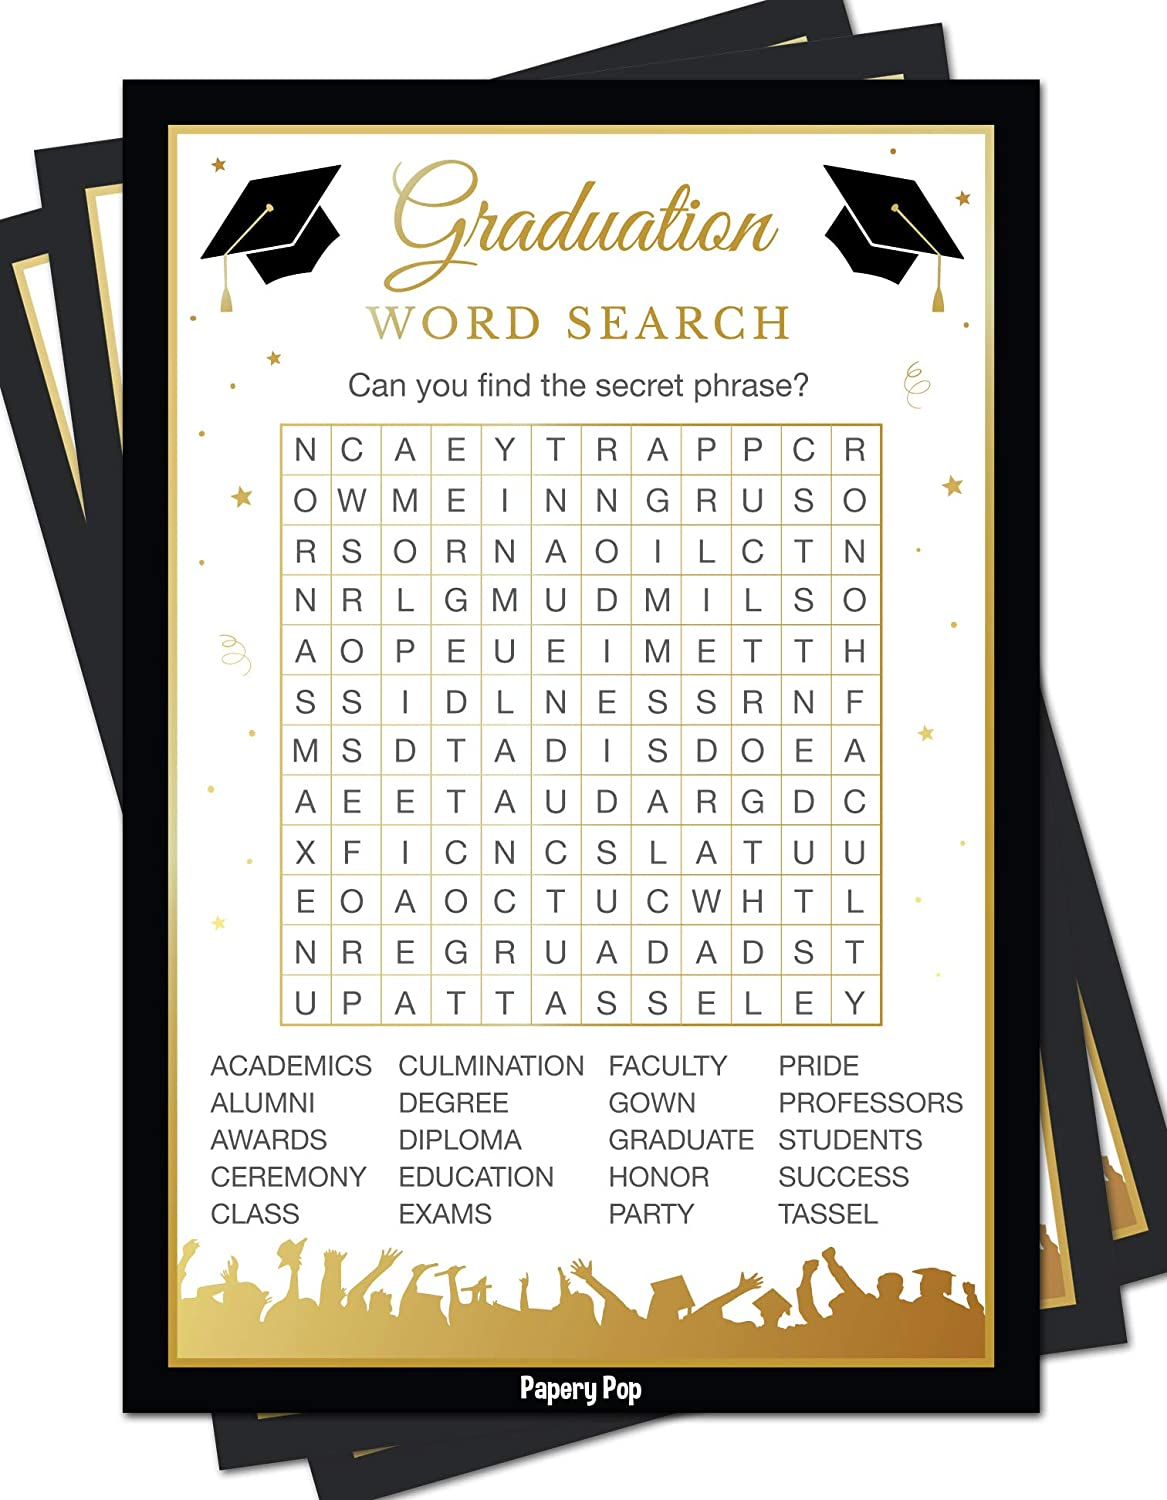 2019 Graduation Party Word Search Game Cards (50 Pack) - Graduation Party  Games Ideas Activities Supplies - Grad Celebration - High School or College